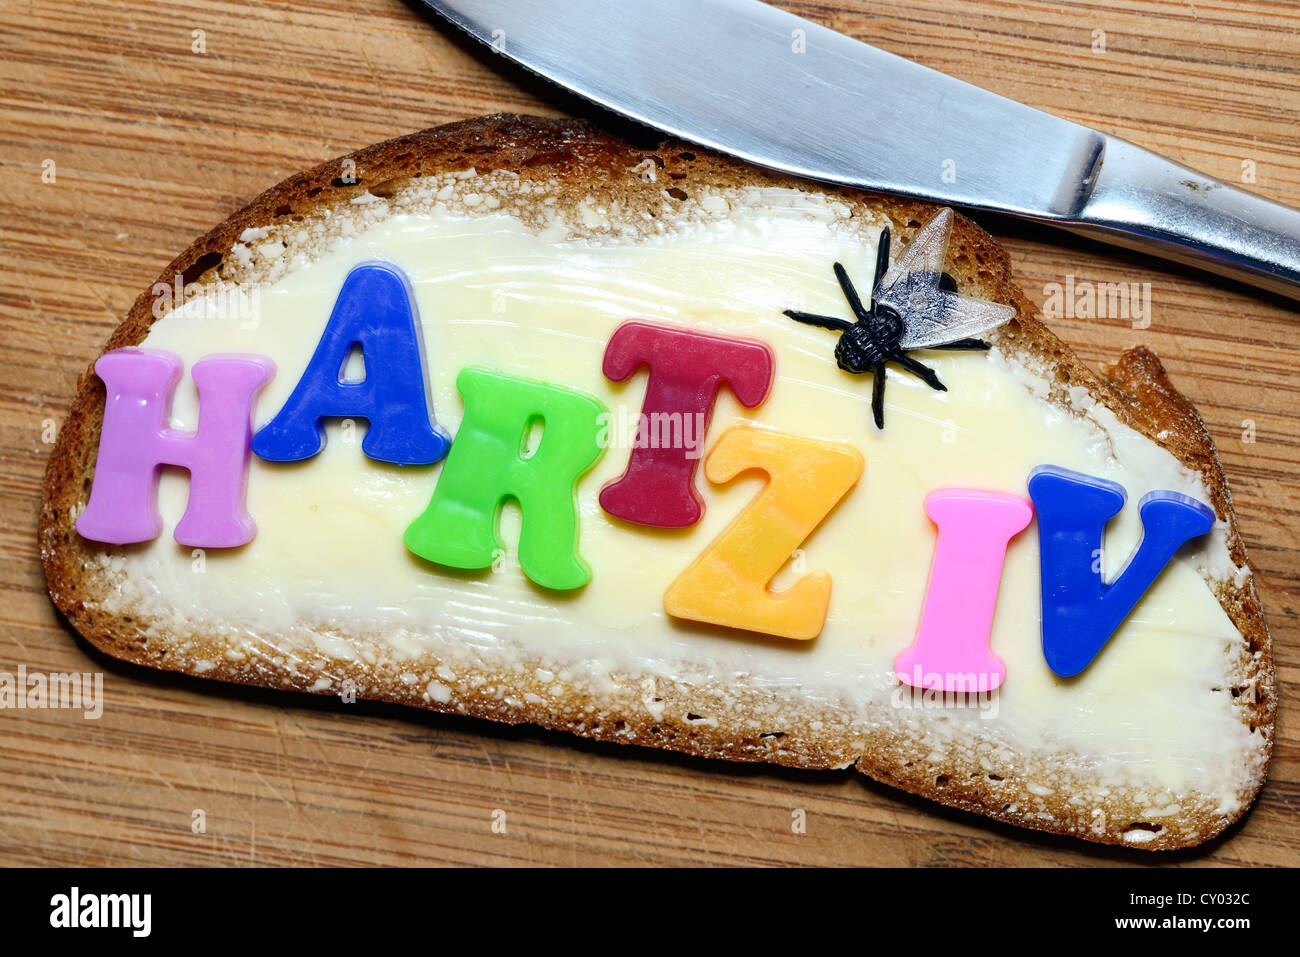 Lettering 'Hartz IV' on a sandwich, symbolic image for Hartz 4 - Stock Image